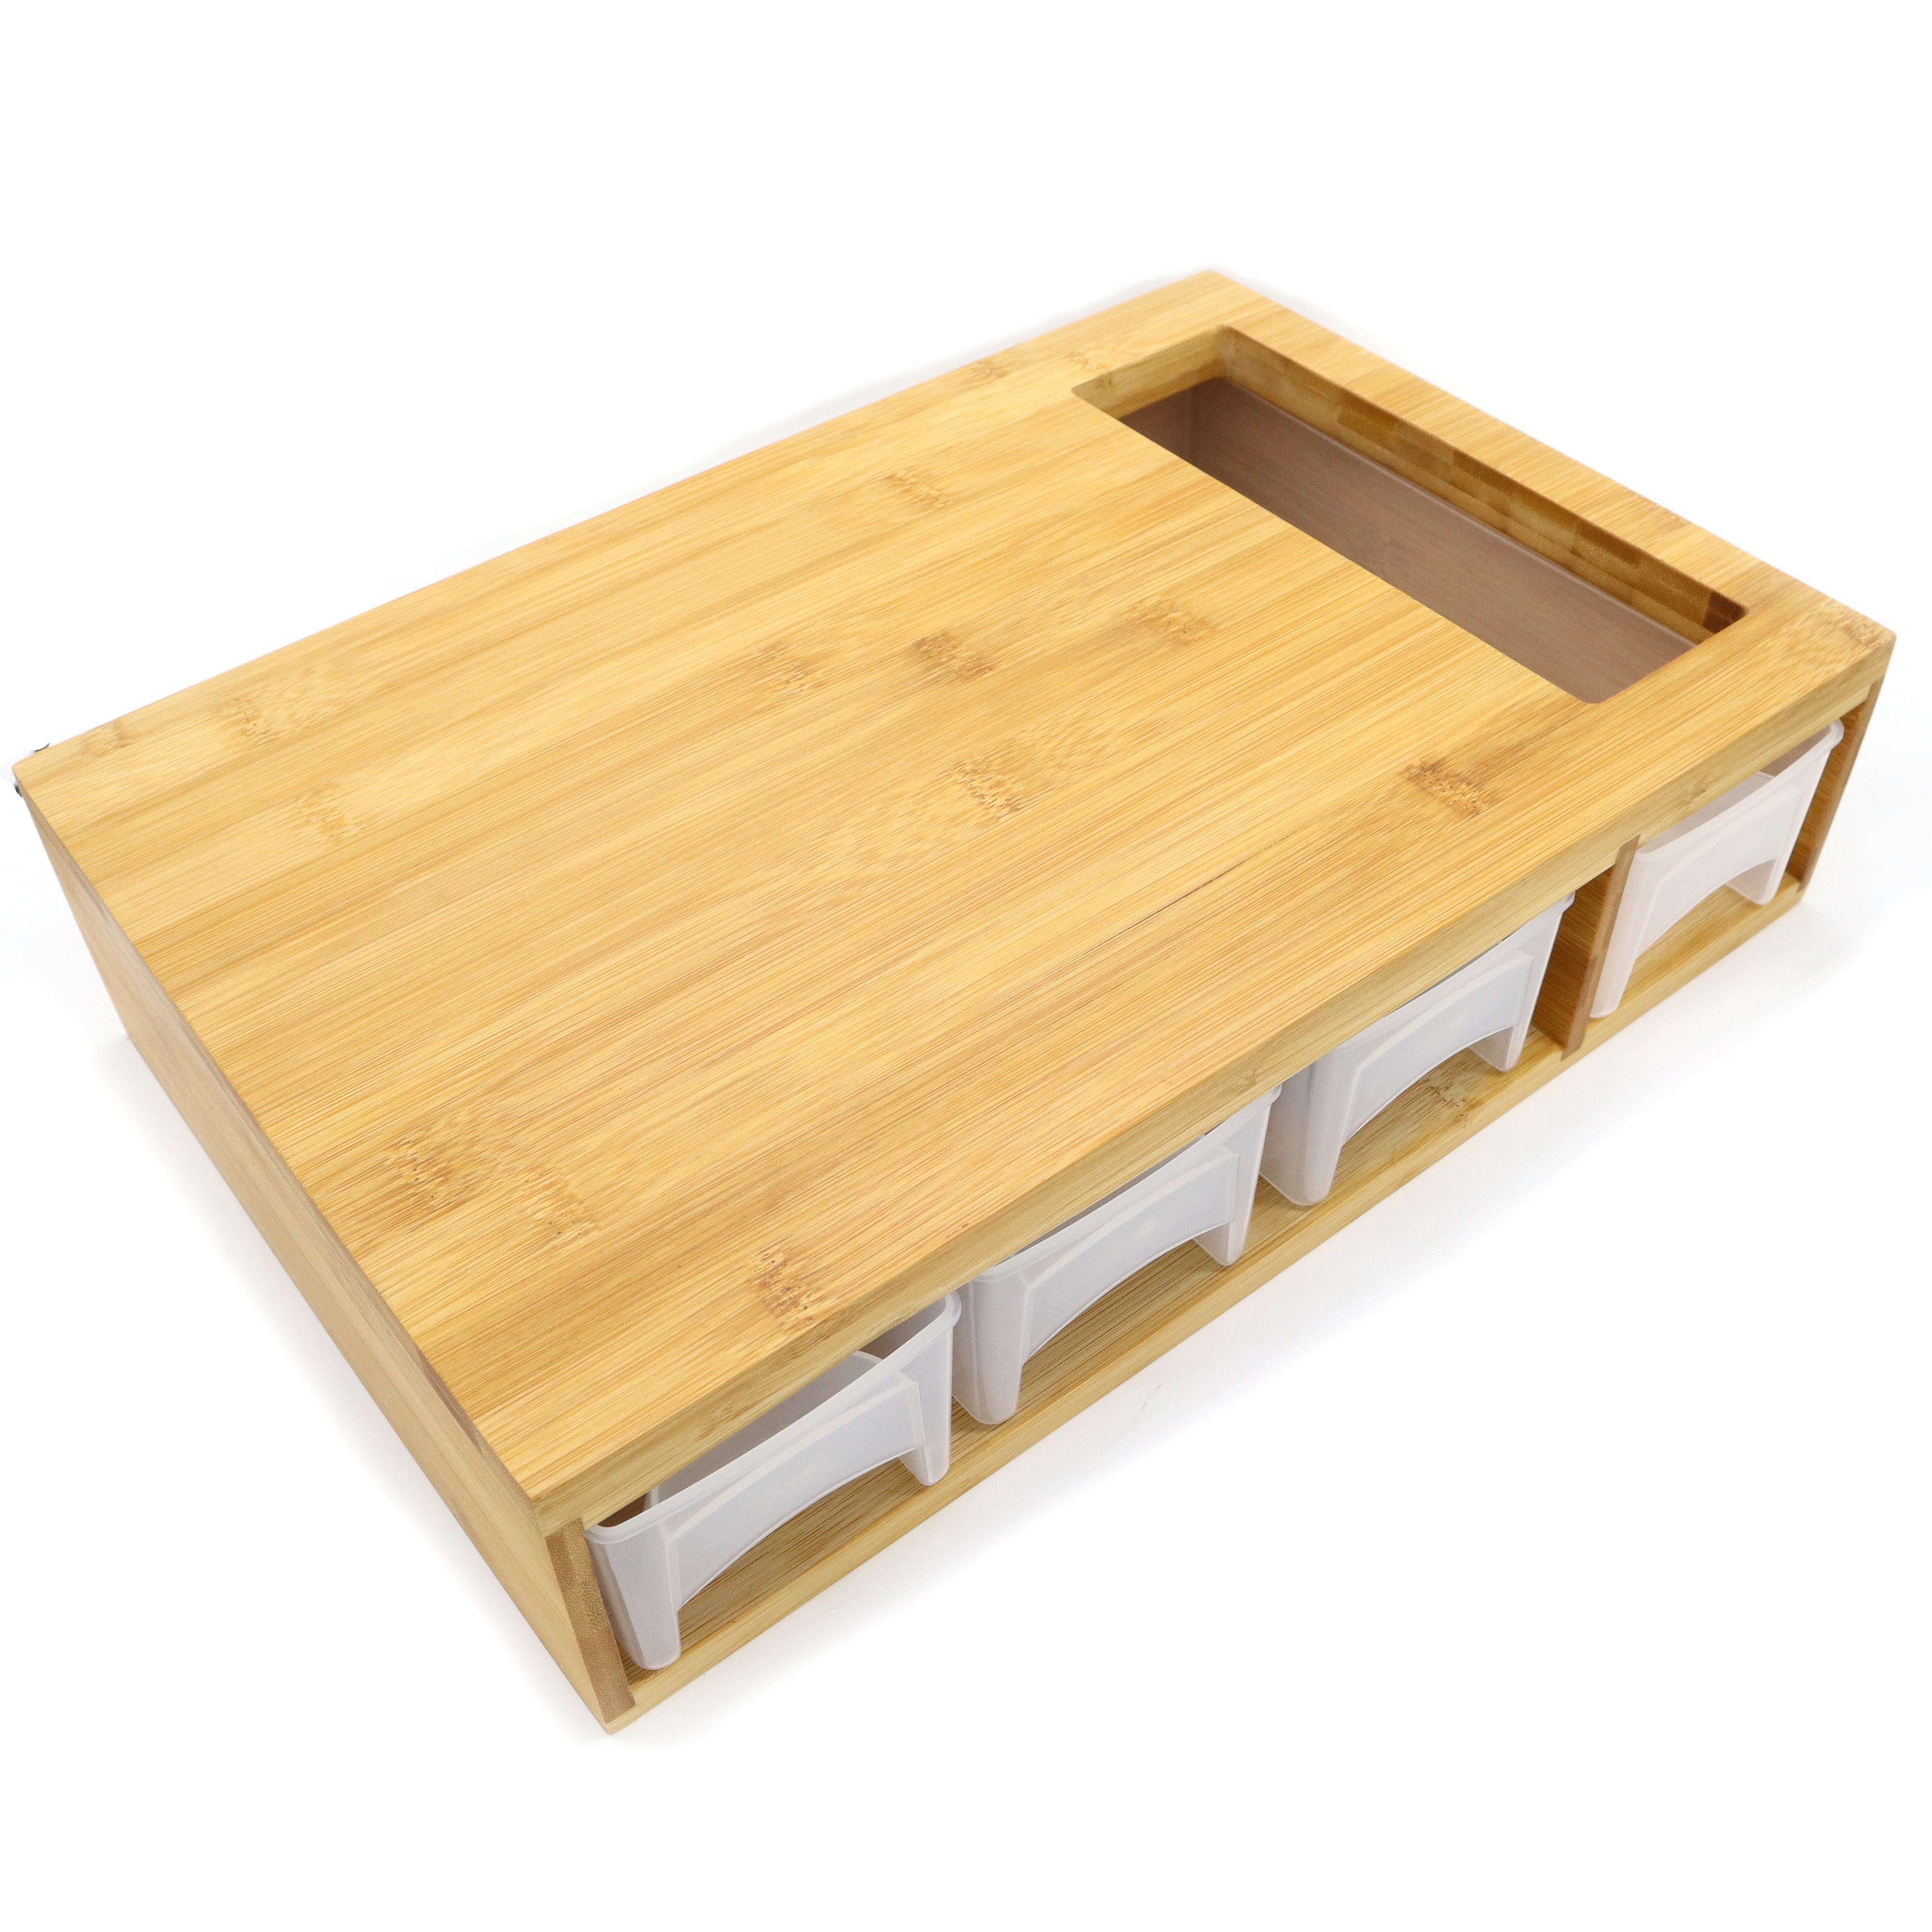 Multi-Functional Premium Bamboo Cutting Board with Containers environmentally